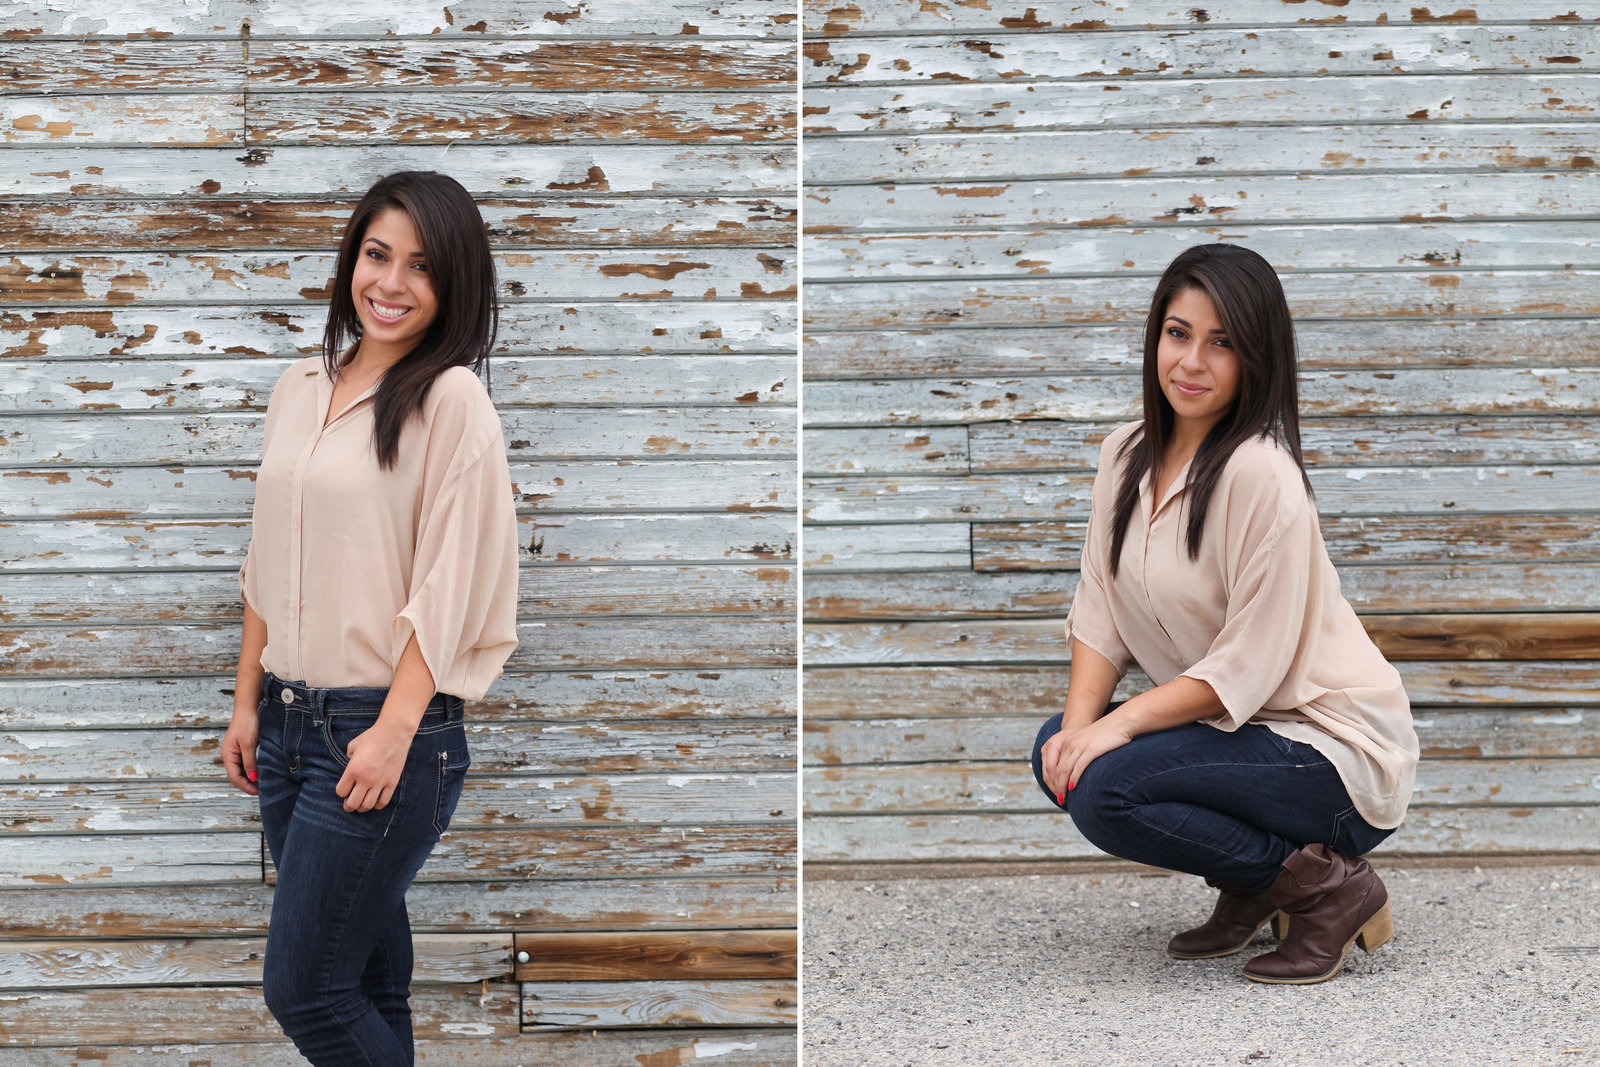 Portland high school senior photo with barn background  | Susie Moreno Photography